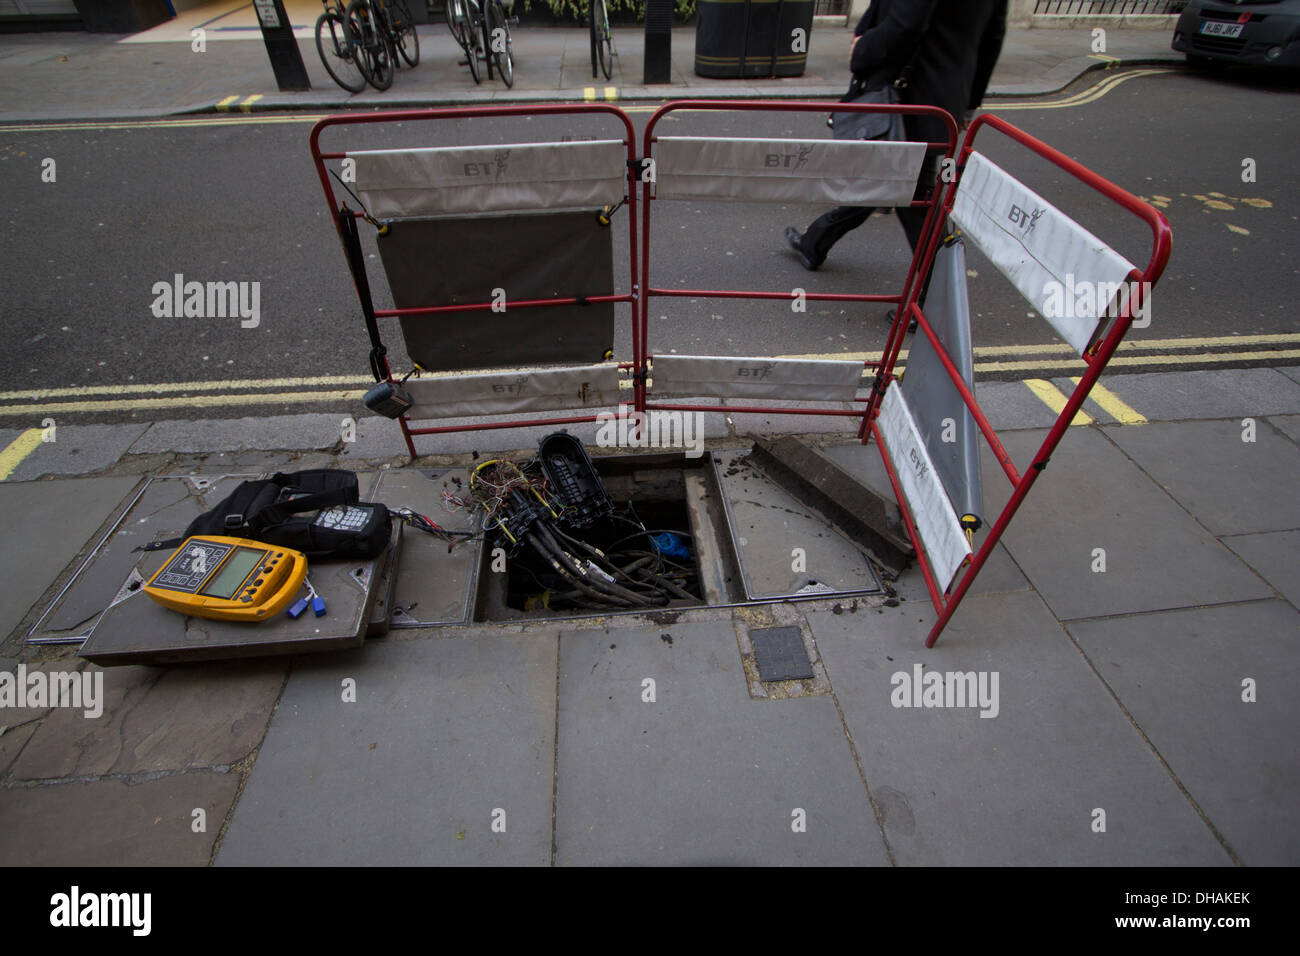 Hole in pavement, British telecom cables in London street, manhole awaiting repairs - Stock Image